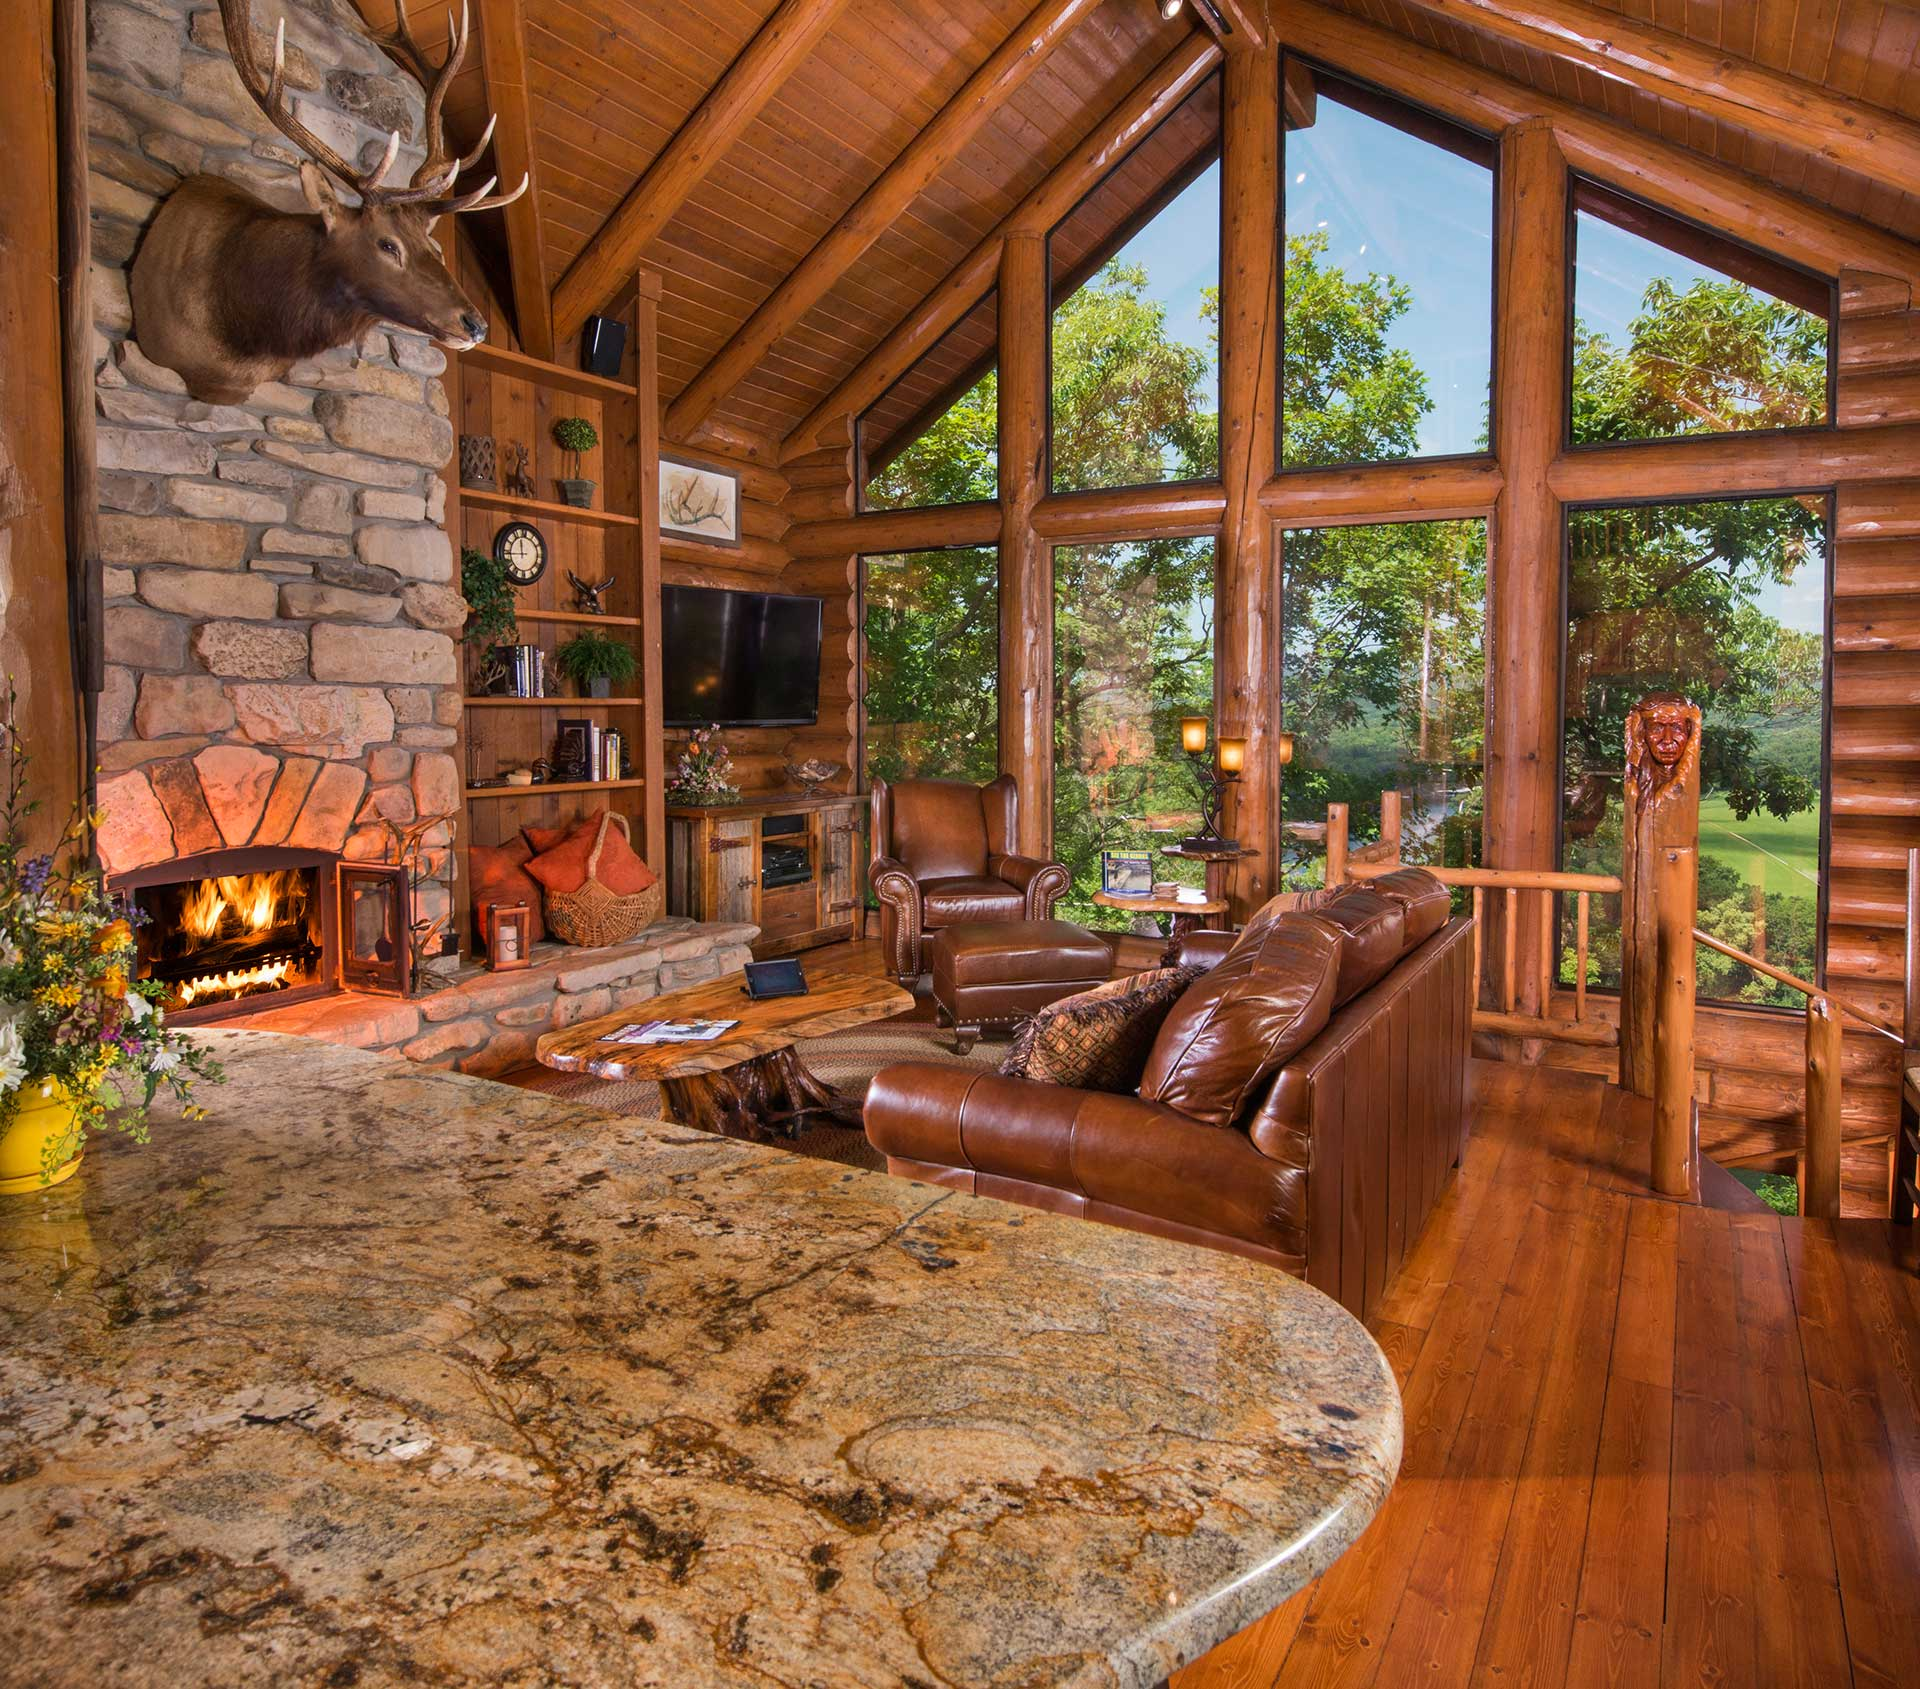 The Bluff House Photo Gallery